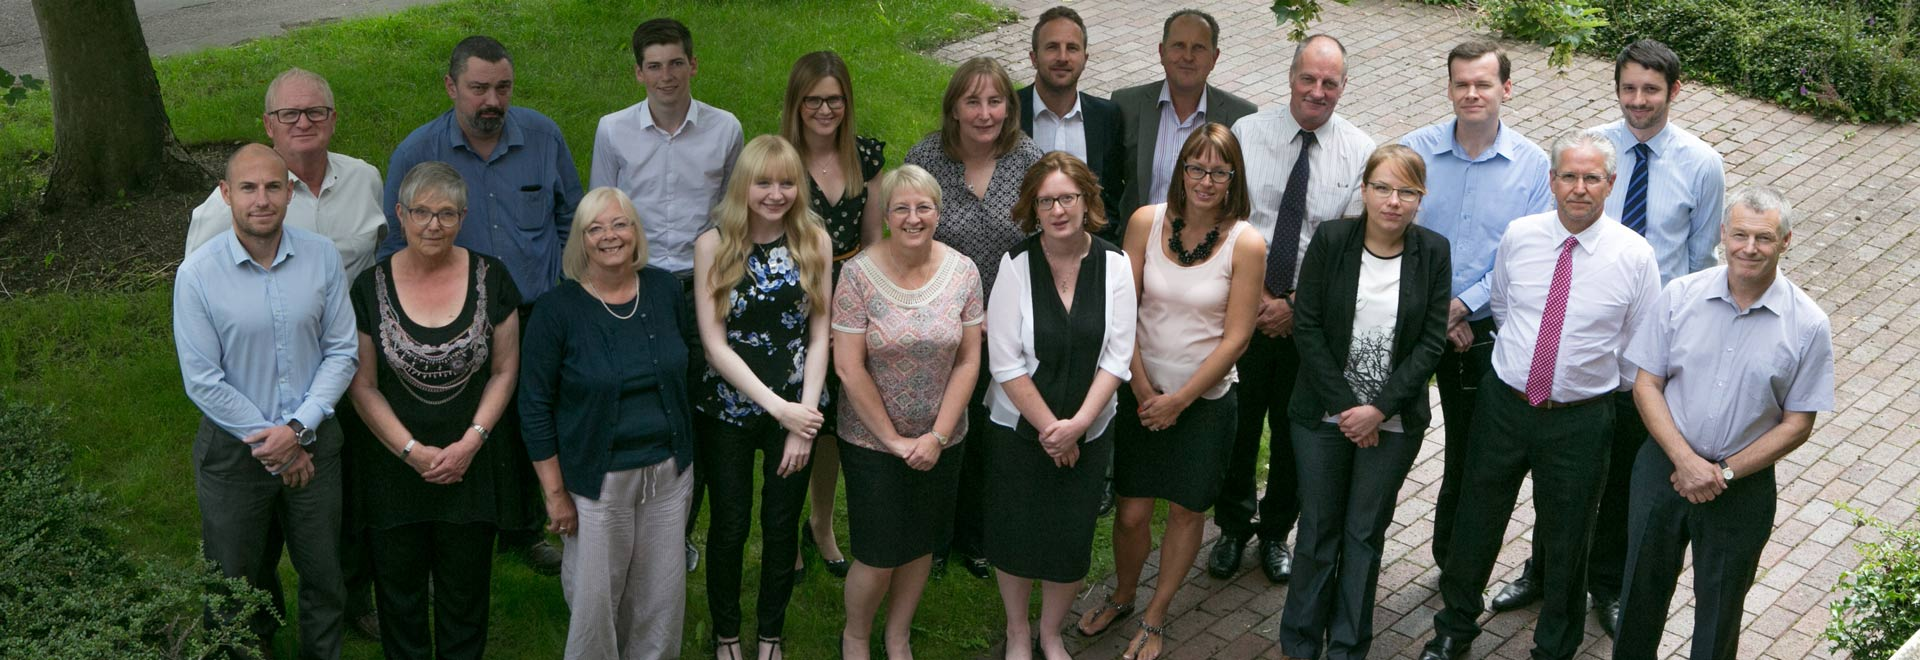 The MGroup - chartered certified accountants and tax advisors